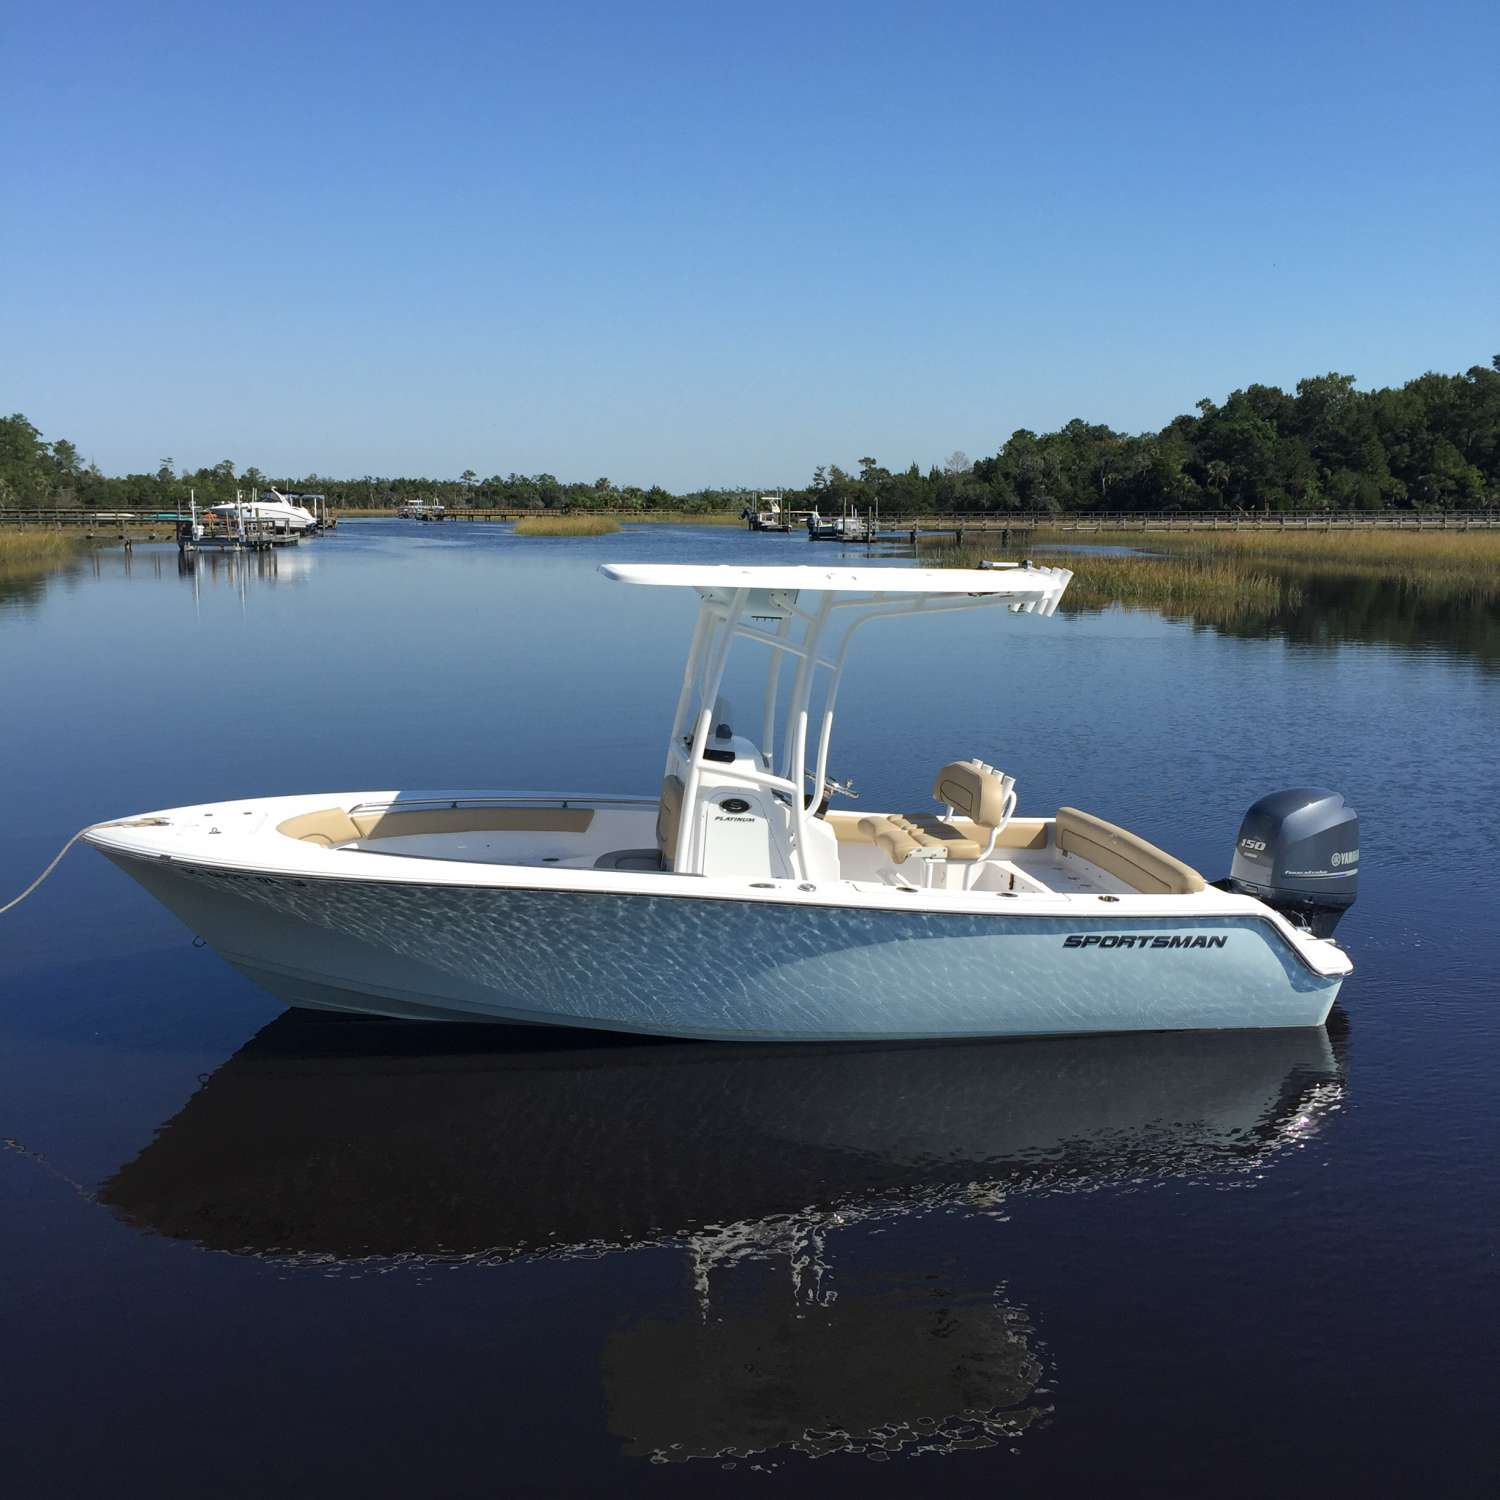 Title: 21 Heritage - On board their Sportsman Heritage 211 Center Console - Location: Charleston, South Carolina. Participating in the Photo Contest #SportsmanOctober2015